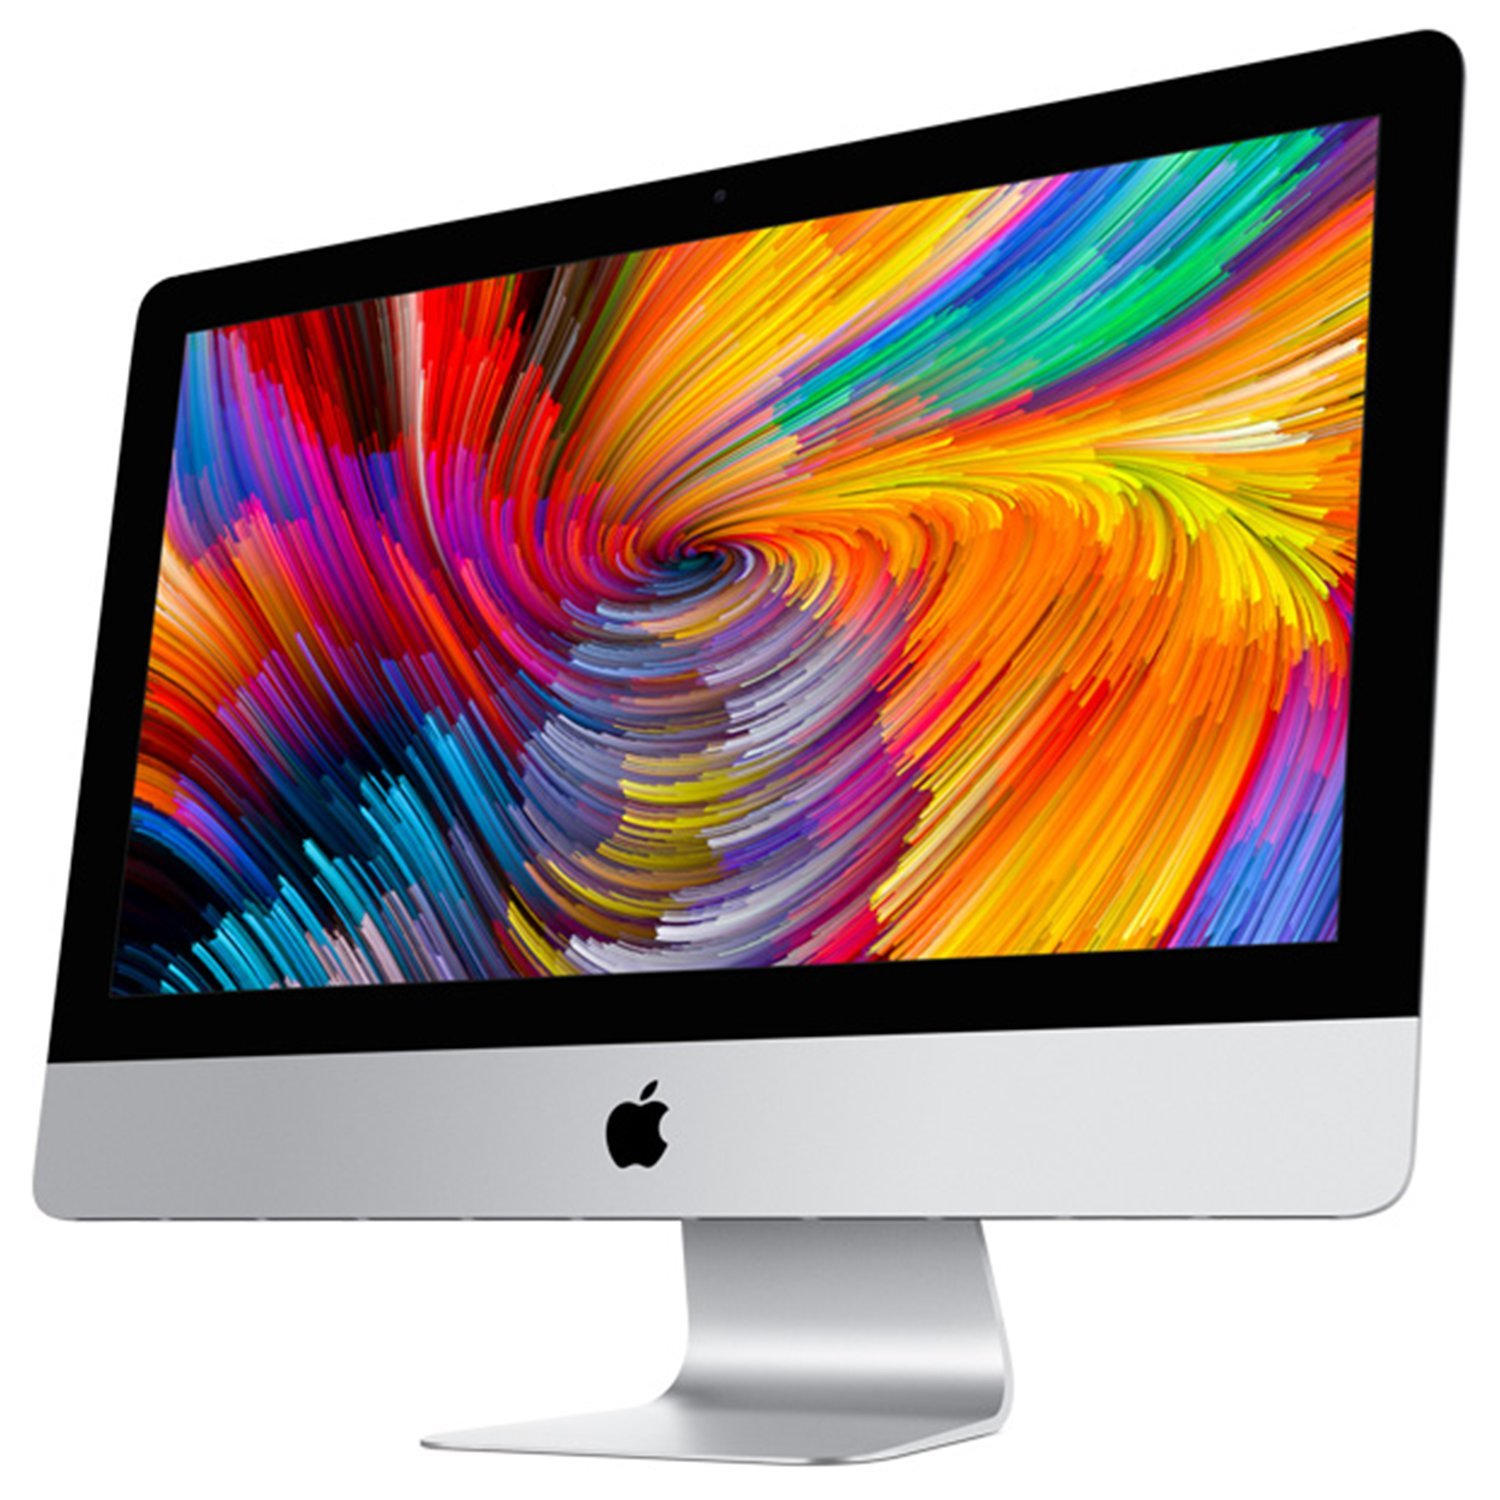 Apple iMac 27'' Desktop with Retina 5K Display (Mid 2017) - 4.2GHz Quad-Core Intel Core 7th-gen i7, 1TB SSD, 64GB 2400MHz DDR4 Memory, 8GB Radeon Pro 580 Graphics, macOS, Magic Keyboard - Spanish by Apple (Image #4)